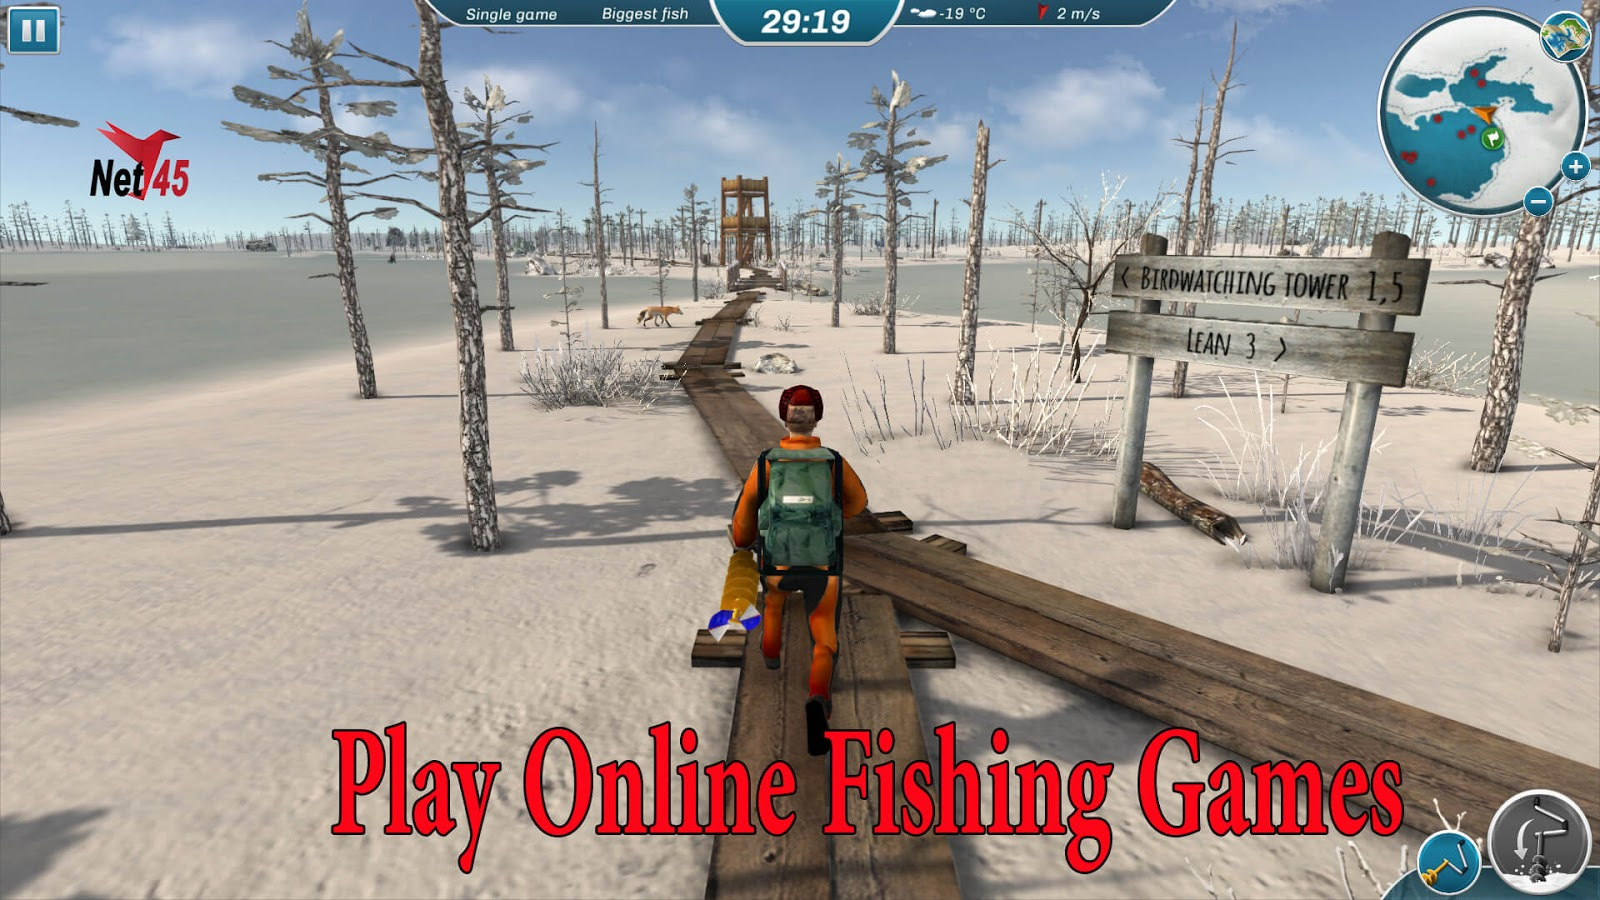 best online fishing games, let's go fishing slot , big fish games onlin, play fish table game big fish casino free ,  free fish games to p , big fish games free , bigfish free online g